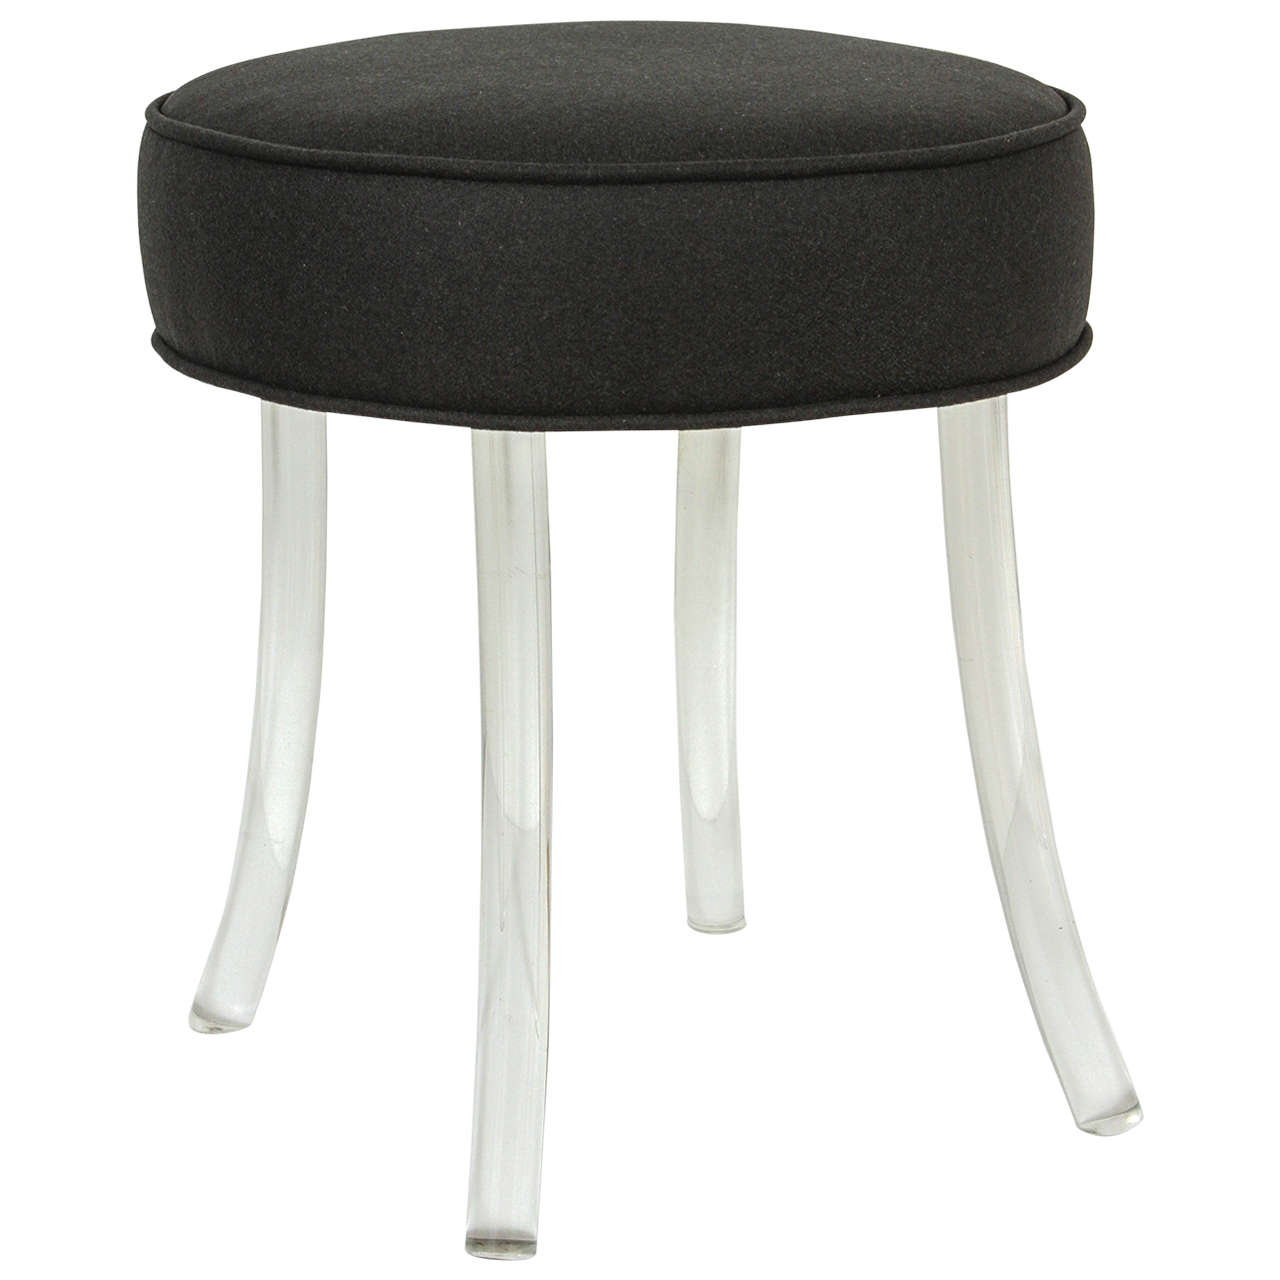 Upholstered william haines vanity stool with lucite legs at 1stdibs